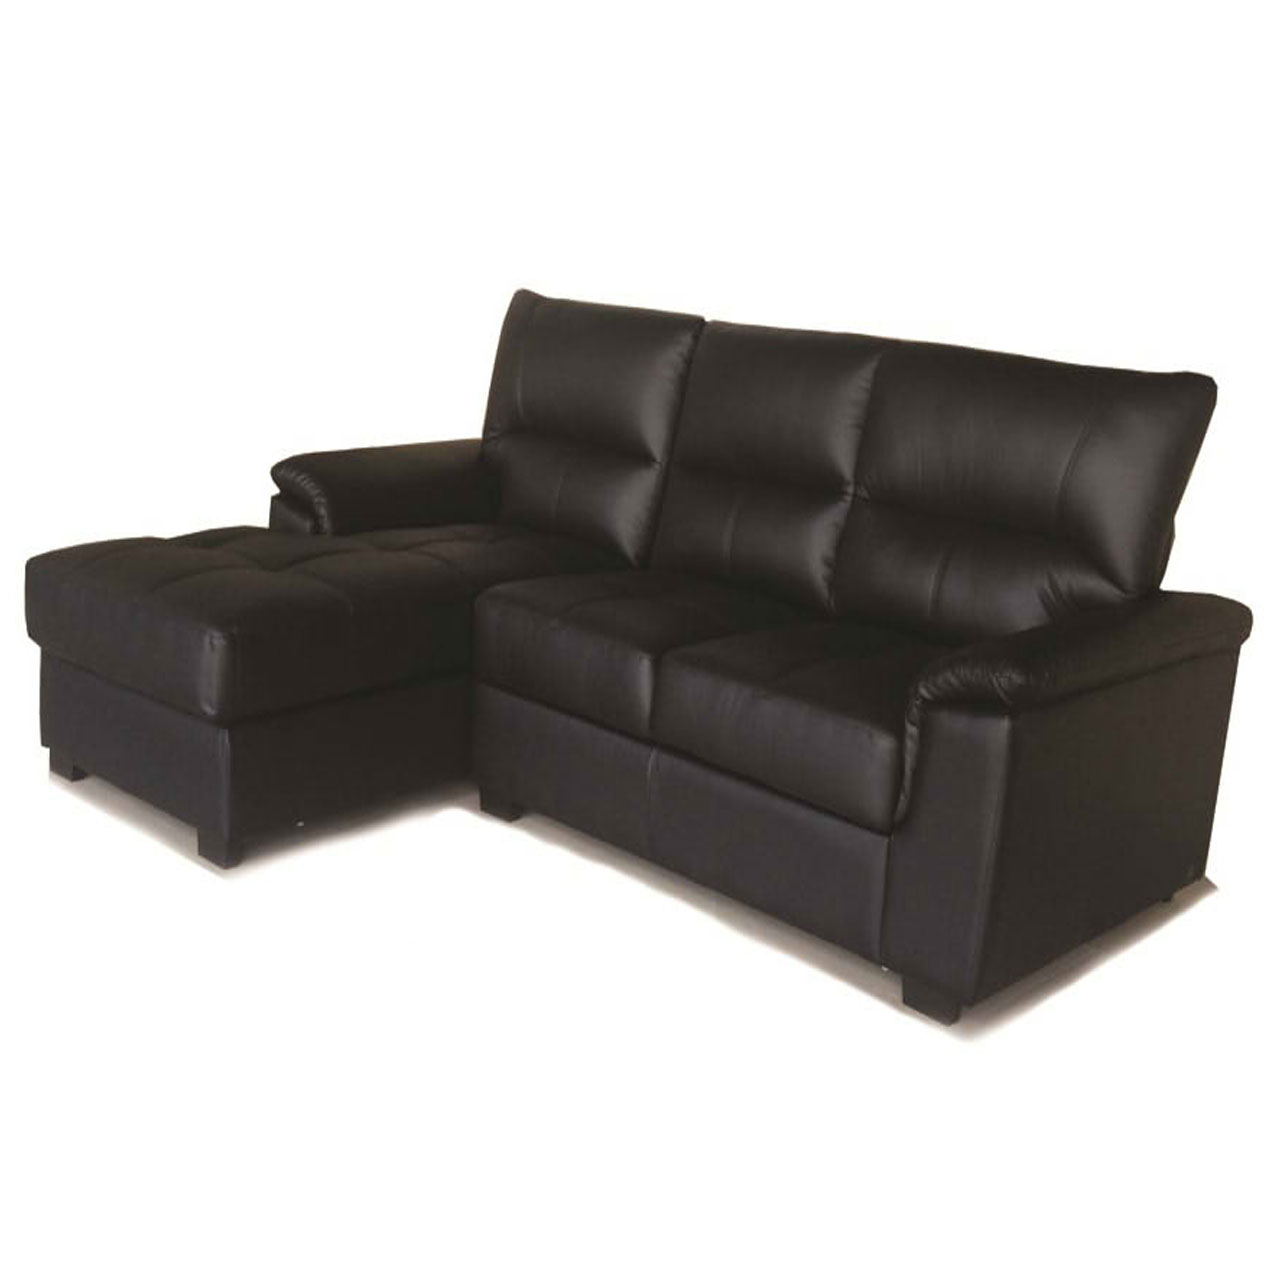 Sofa Set Price In Jagdalpur Sofa Set Price In Philippines Full Set Of Sofa For